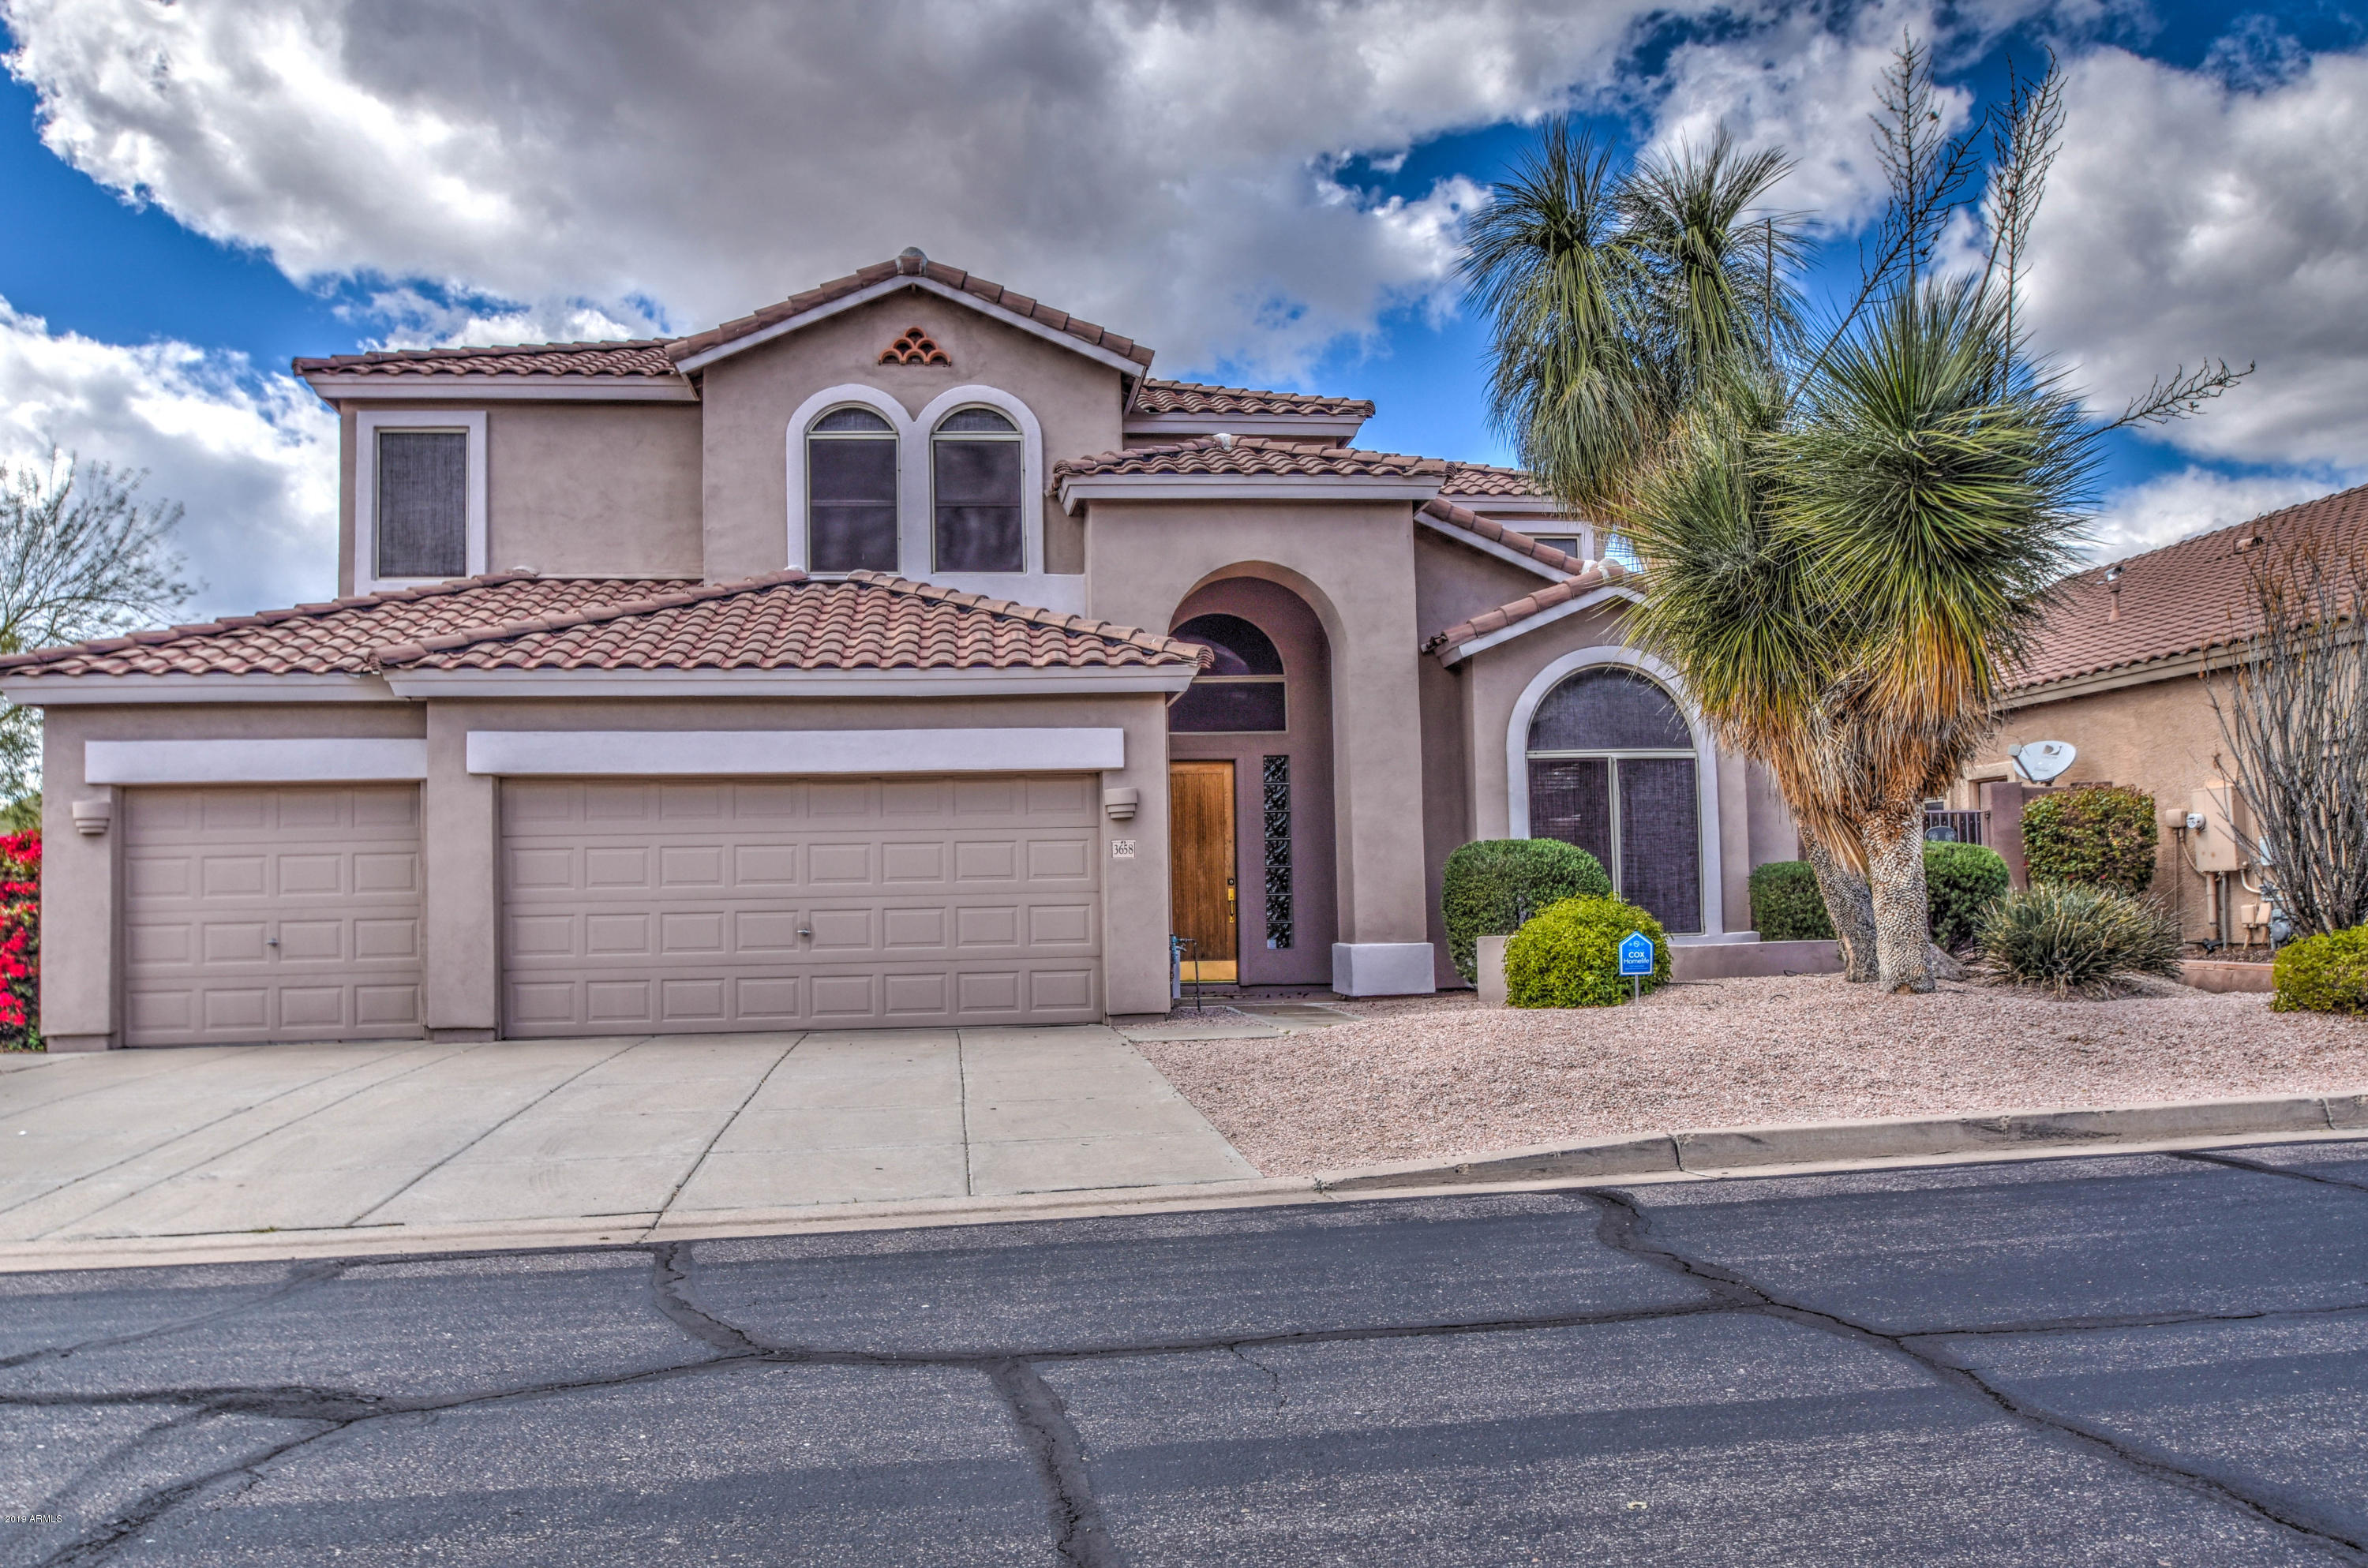 Photo of 3658 N Barron --, Mesa, AZ 85207